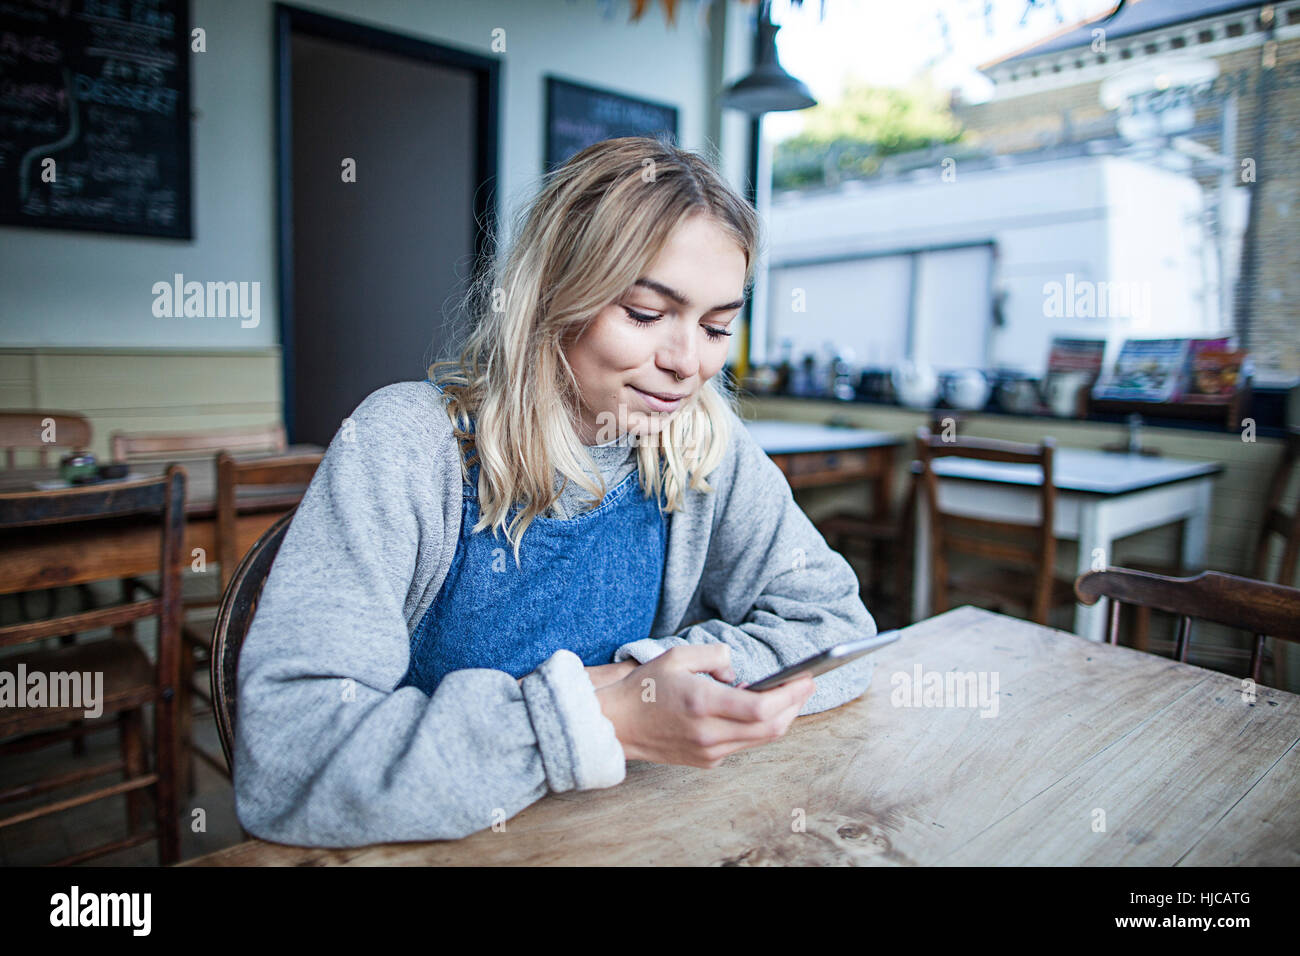 Young woman sitting in cafe, using smartphone, smiling - Stock Image